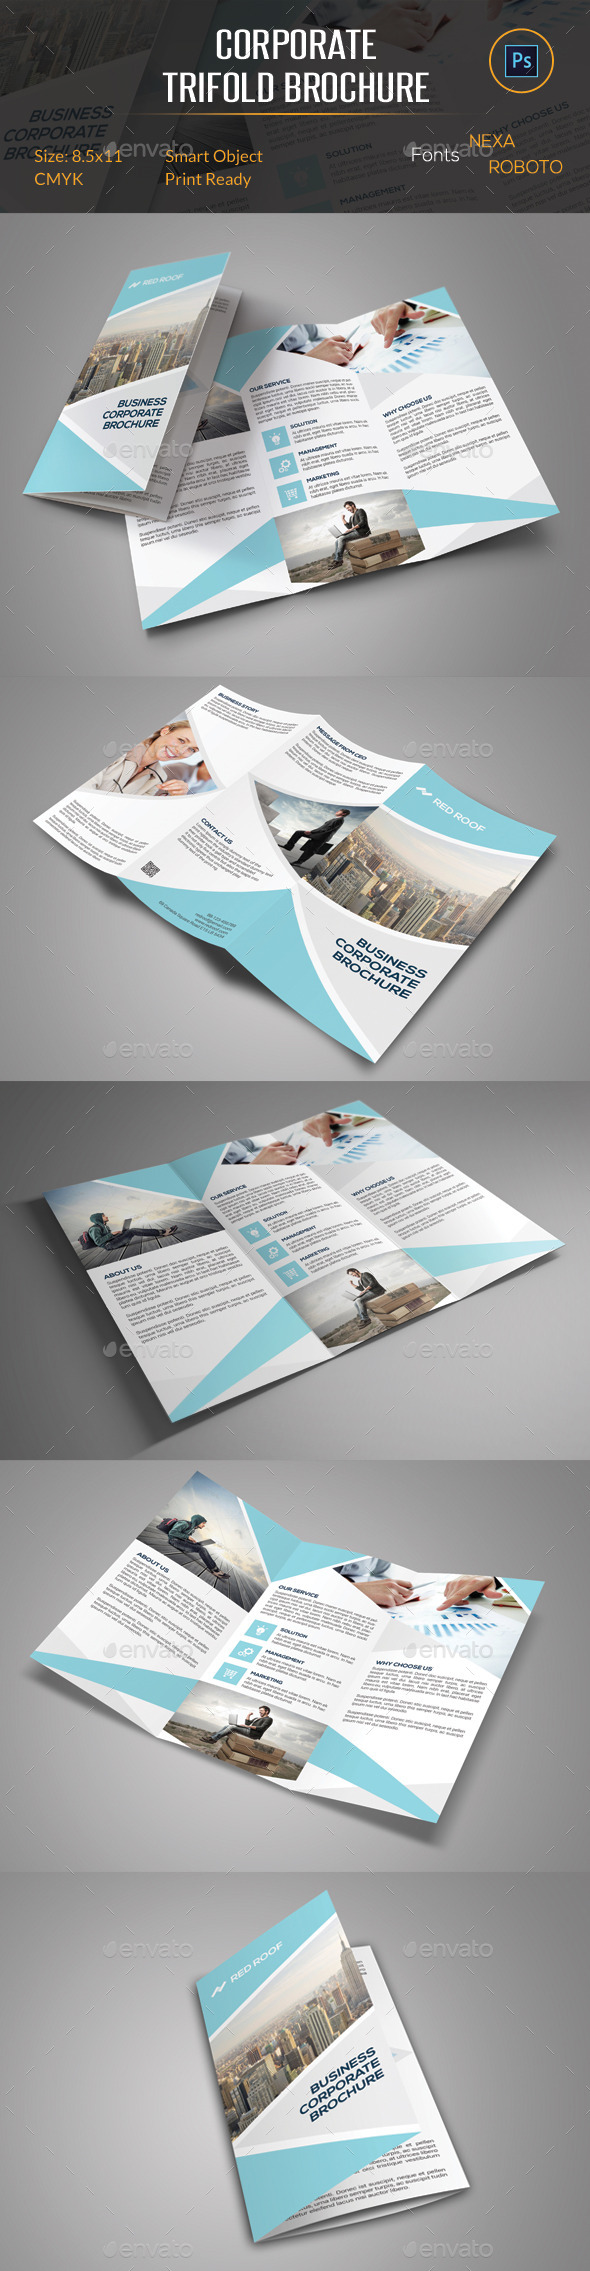 GraphicRiver Corporate Trifold Brochure 11026619